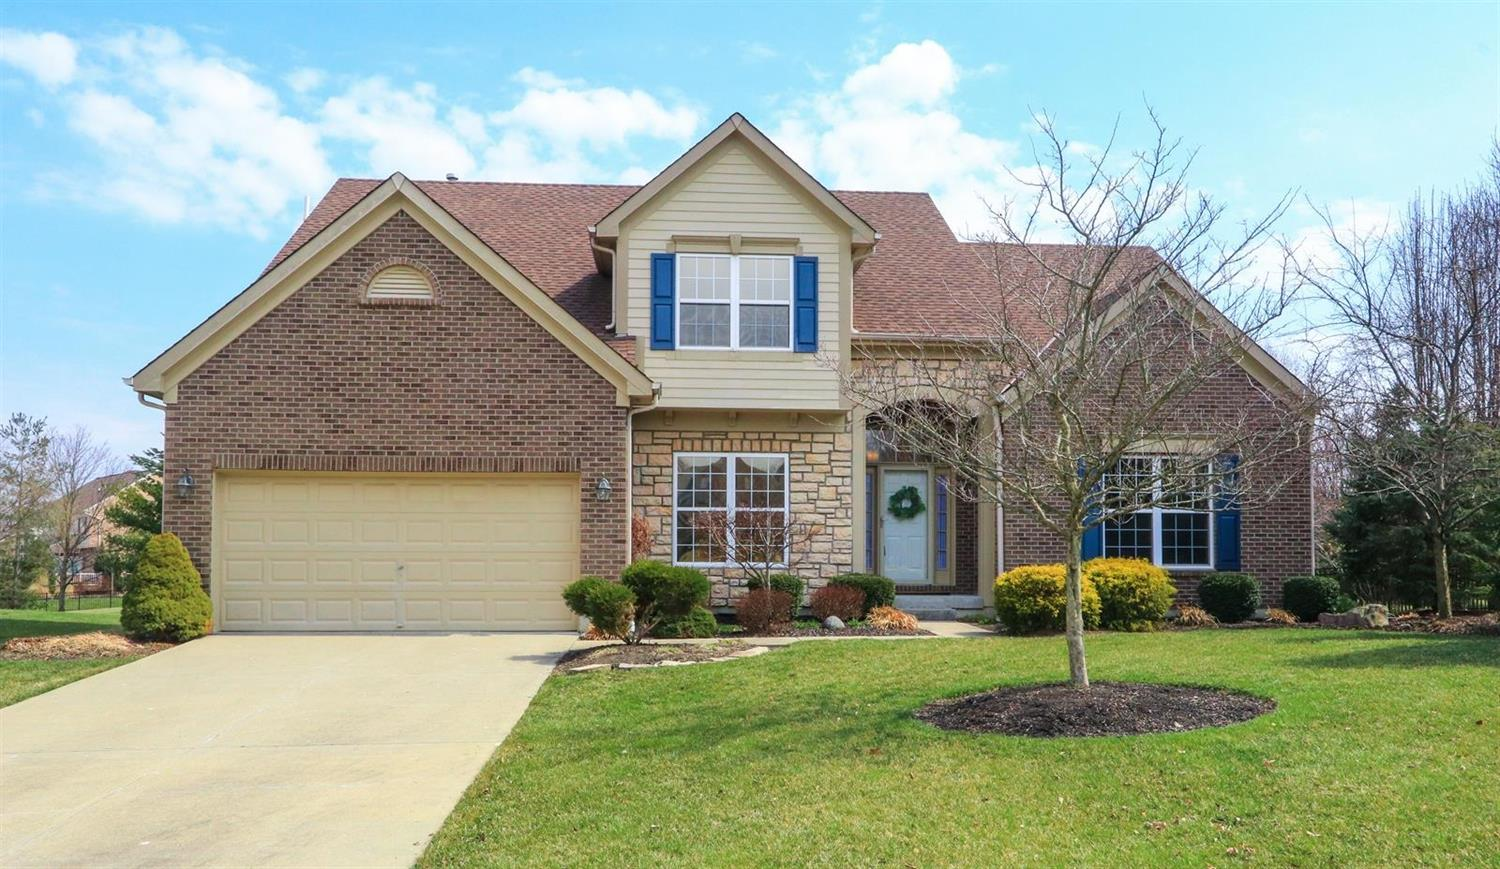 Property for sale at 7890 Royal Fern Court, Liberty Twp,  Ohio 45044